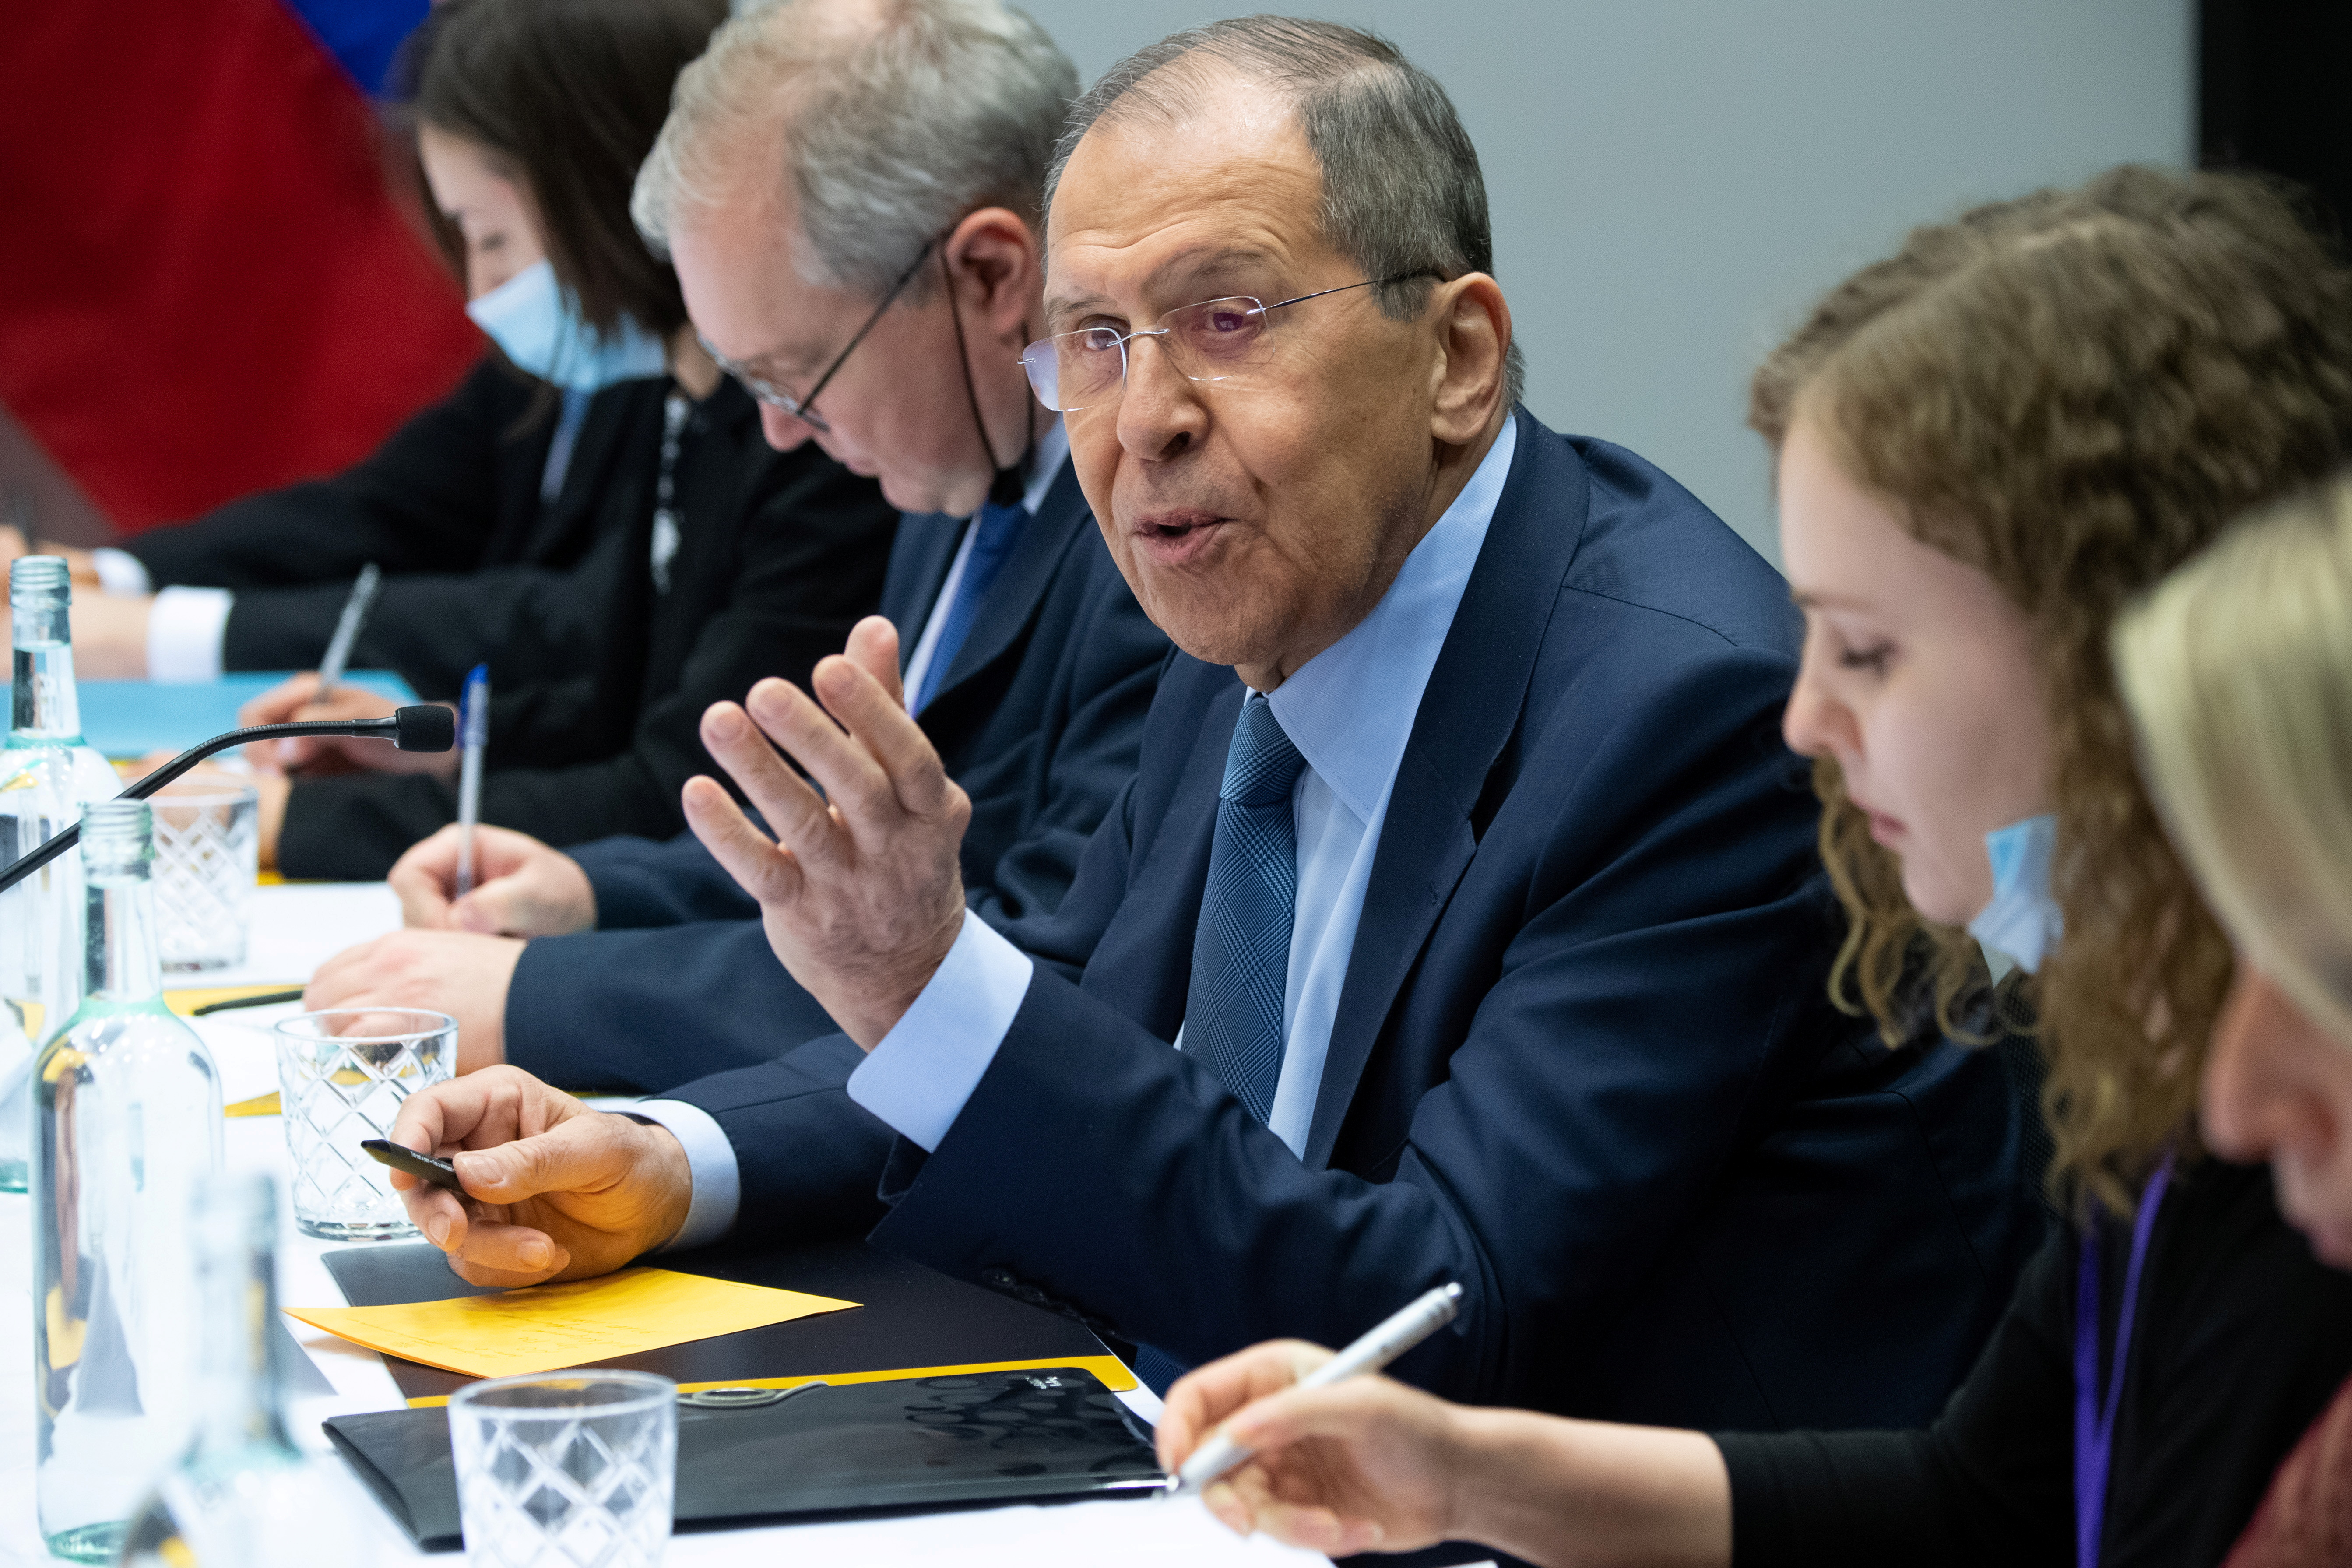 Russian Foreign Minister Sergey Lavrov speaks during a meeting with U.S. Secretary of State Antony Blinken at the Harpa Concert Hall, on the sidelines of the Arctic Council Ministerial summit, in Reykjavik, Iceland, May 19, 2021. Saul Loeb/Pool via REUTERS